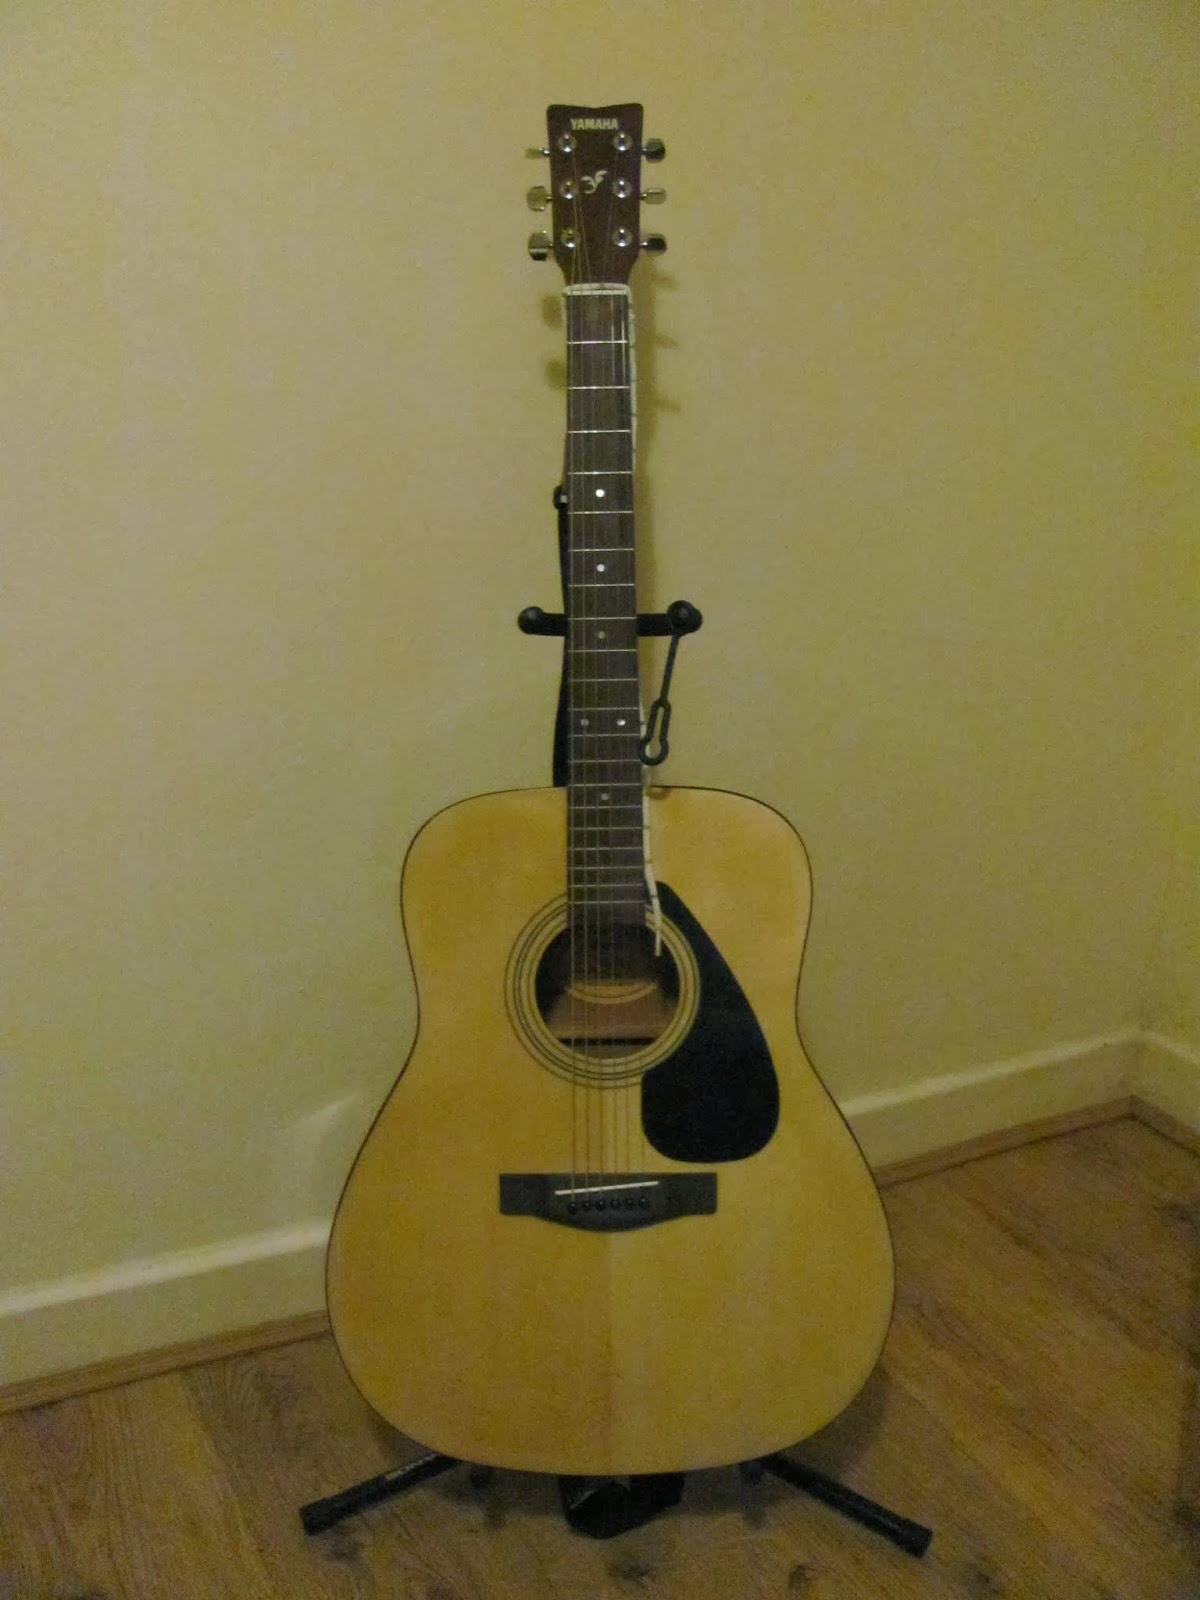 Yamaha F310 Acoustic Guitar on stand